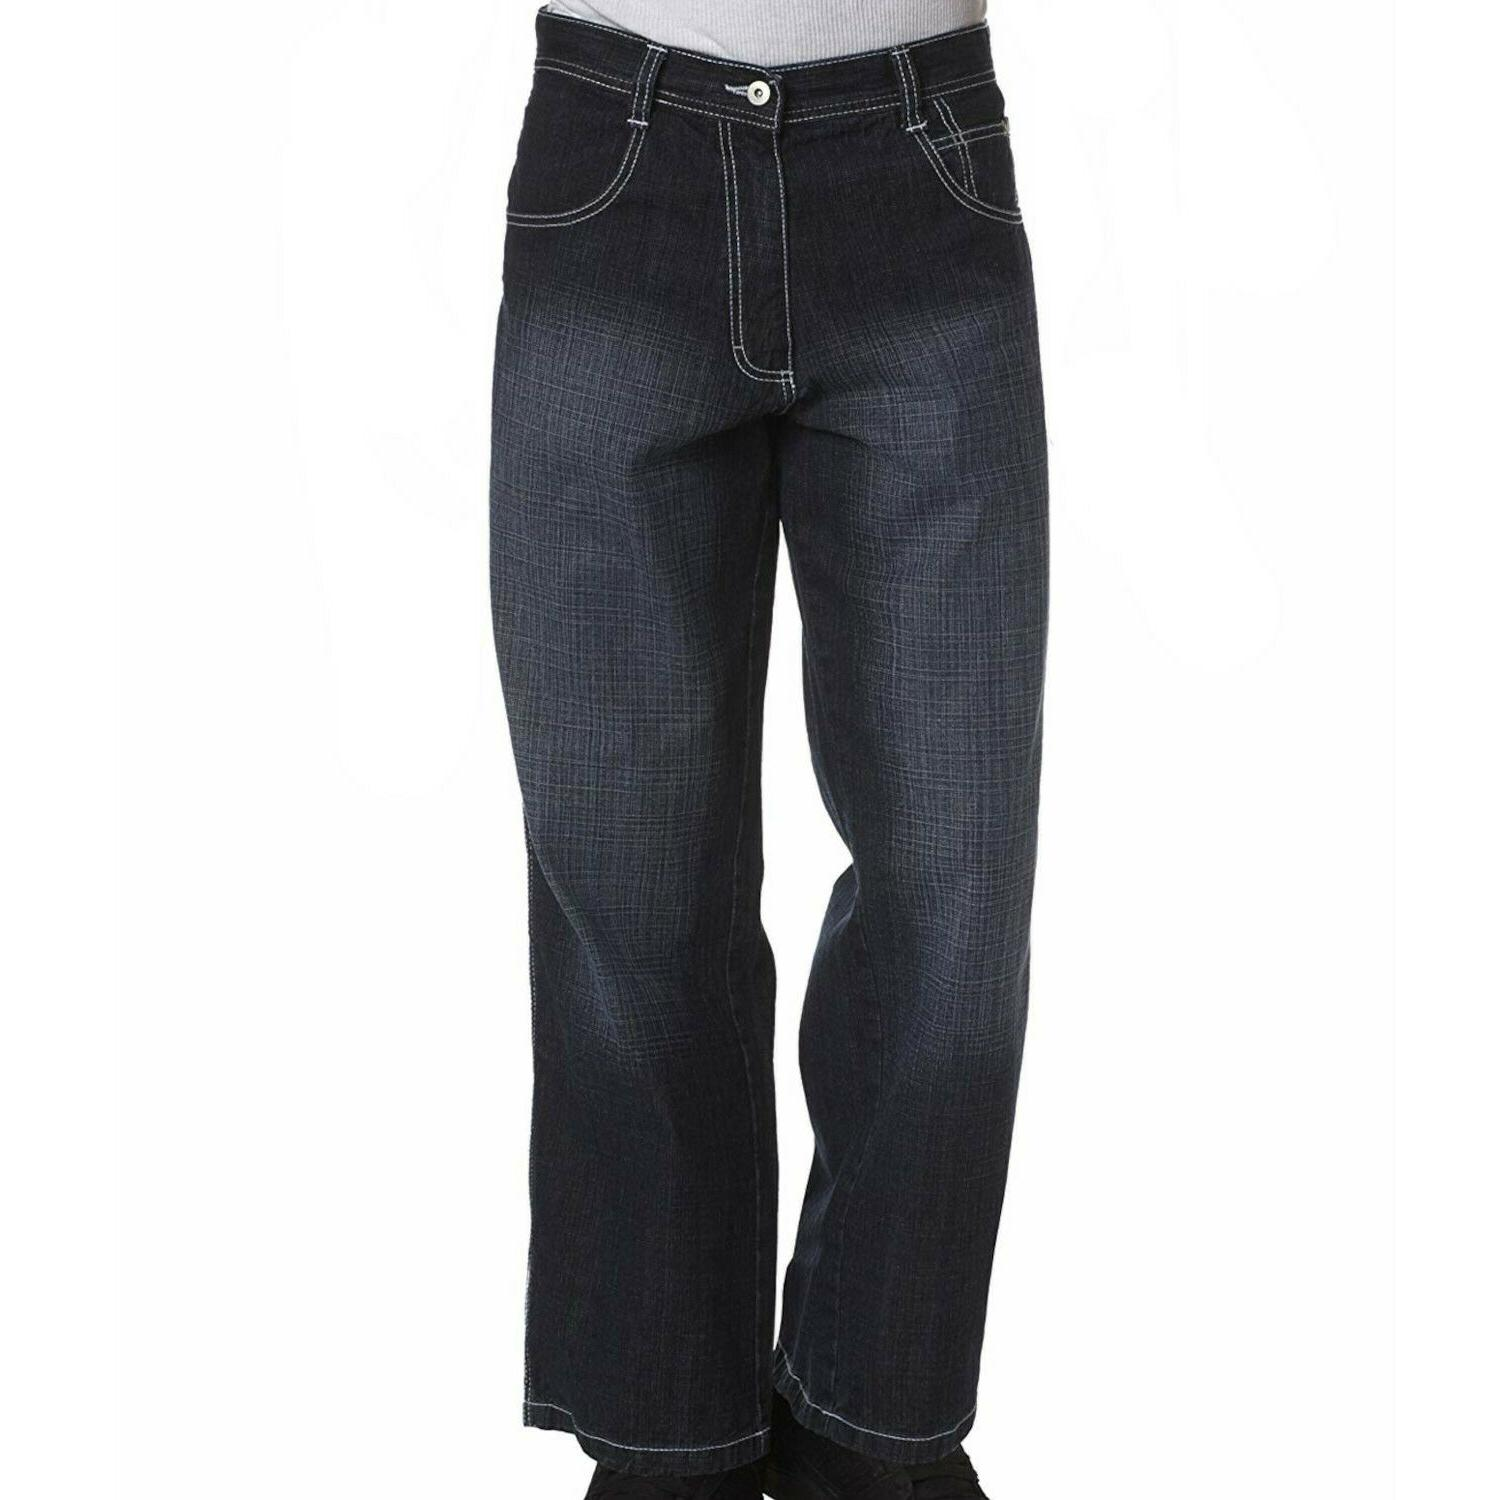 SOUTHPOLE RELAXED FIT NO 9001-4180 DARK BLUE